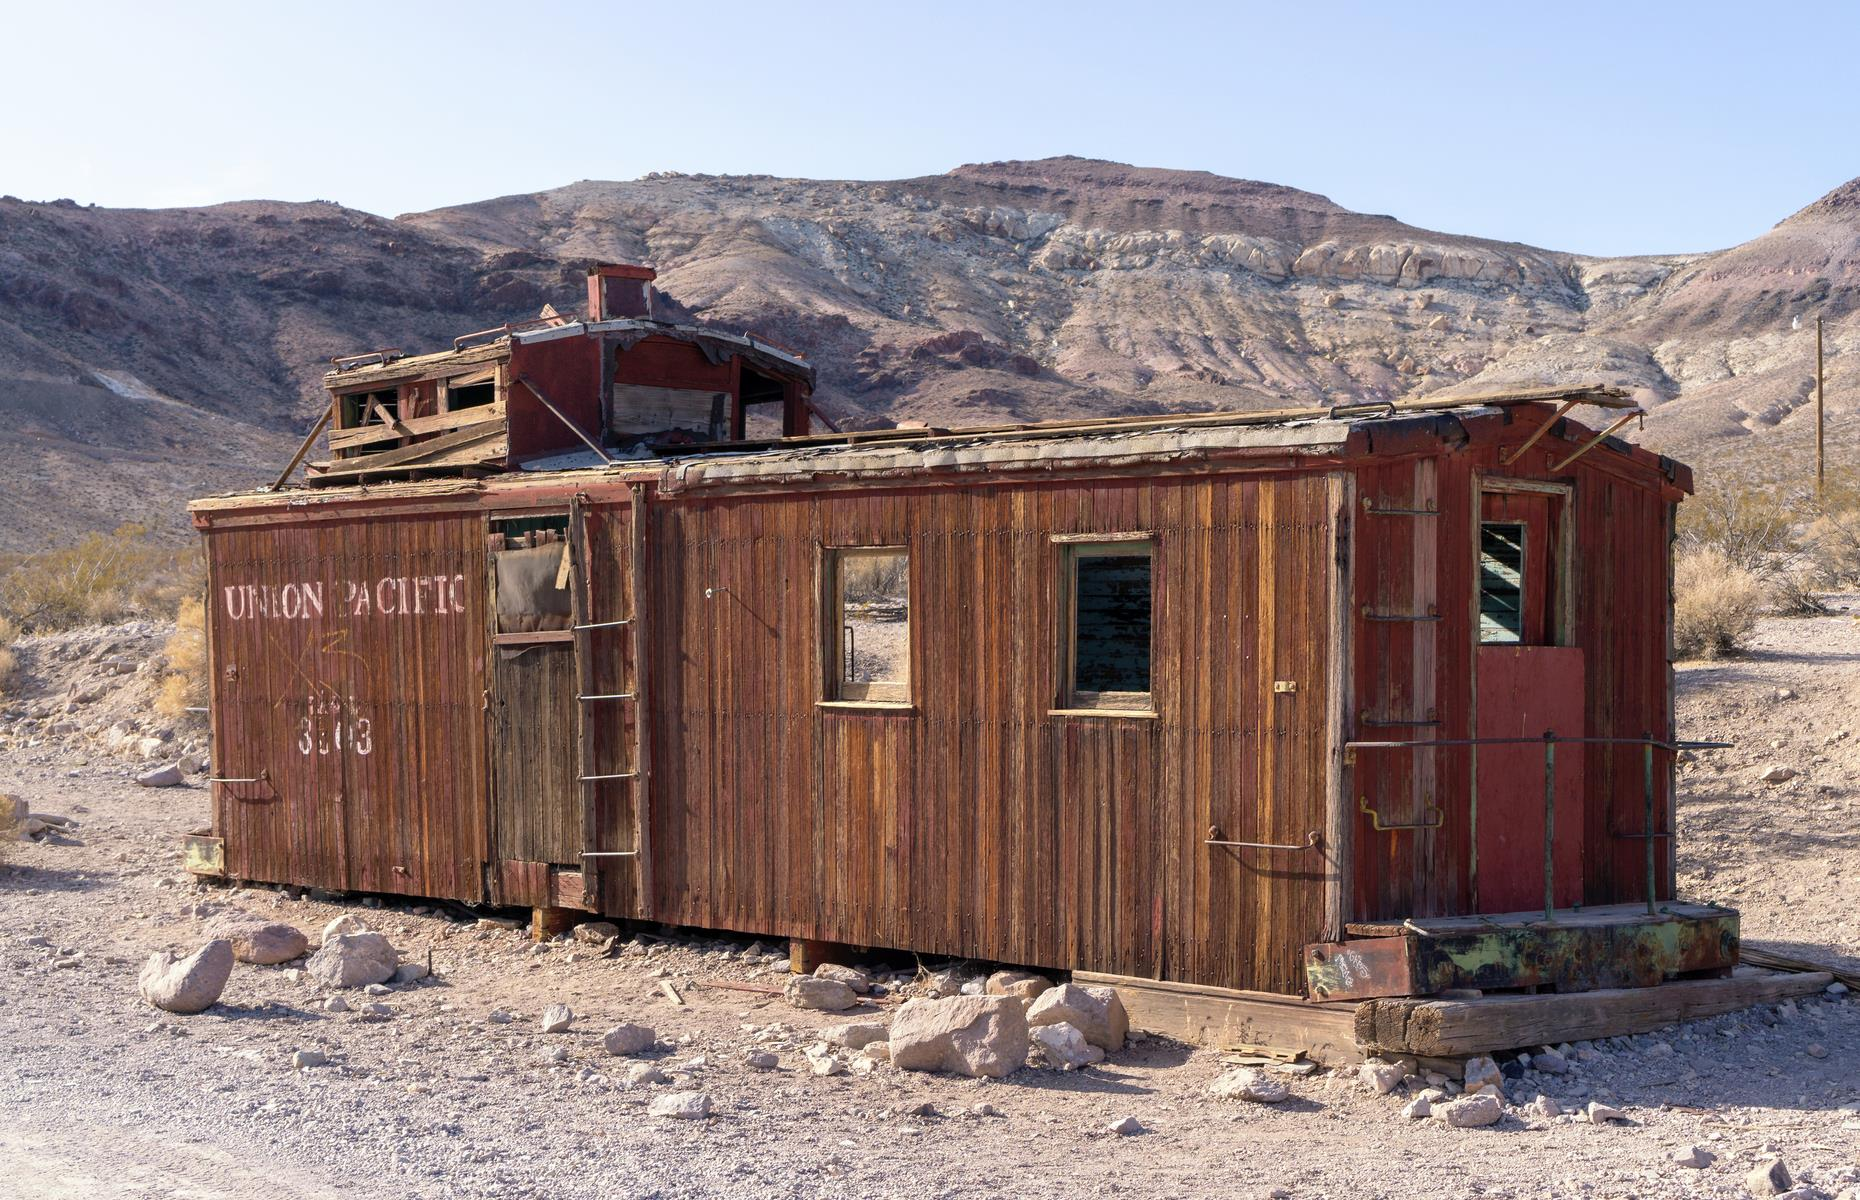 Slide 30 of 52: Situated just outside the boundaries of Death Valley National Park, Rhyolite is Nevada's most intriguing ghost town. Prospectors found quartz in the area as early as 1904 and a town filled with stores, houses, a school and even hotels soon bloomed. Its success was fleeting though: by 1910, business began to decline and by 1916 Rhyolite was completely abandoned. Today reminders of the town's existence pop up across the stark landscape, from parts of an old jail to a decrepit bank building.